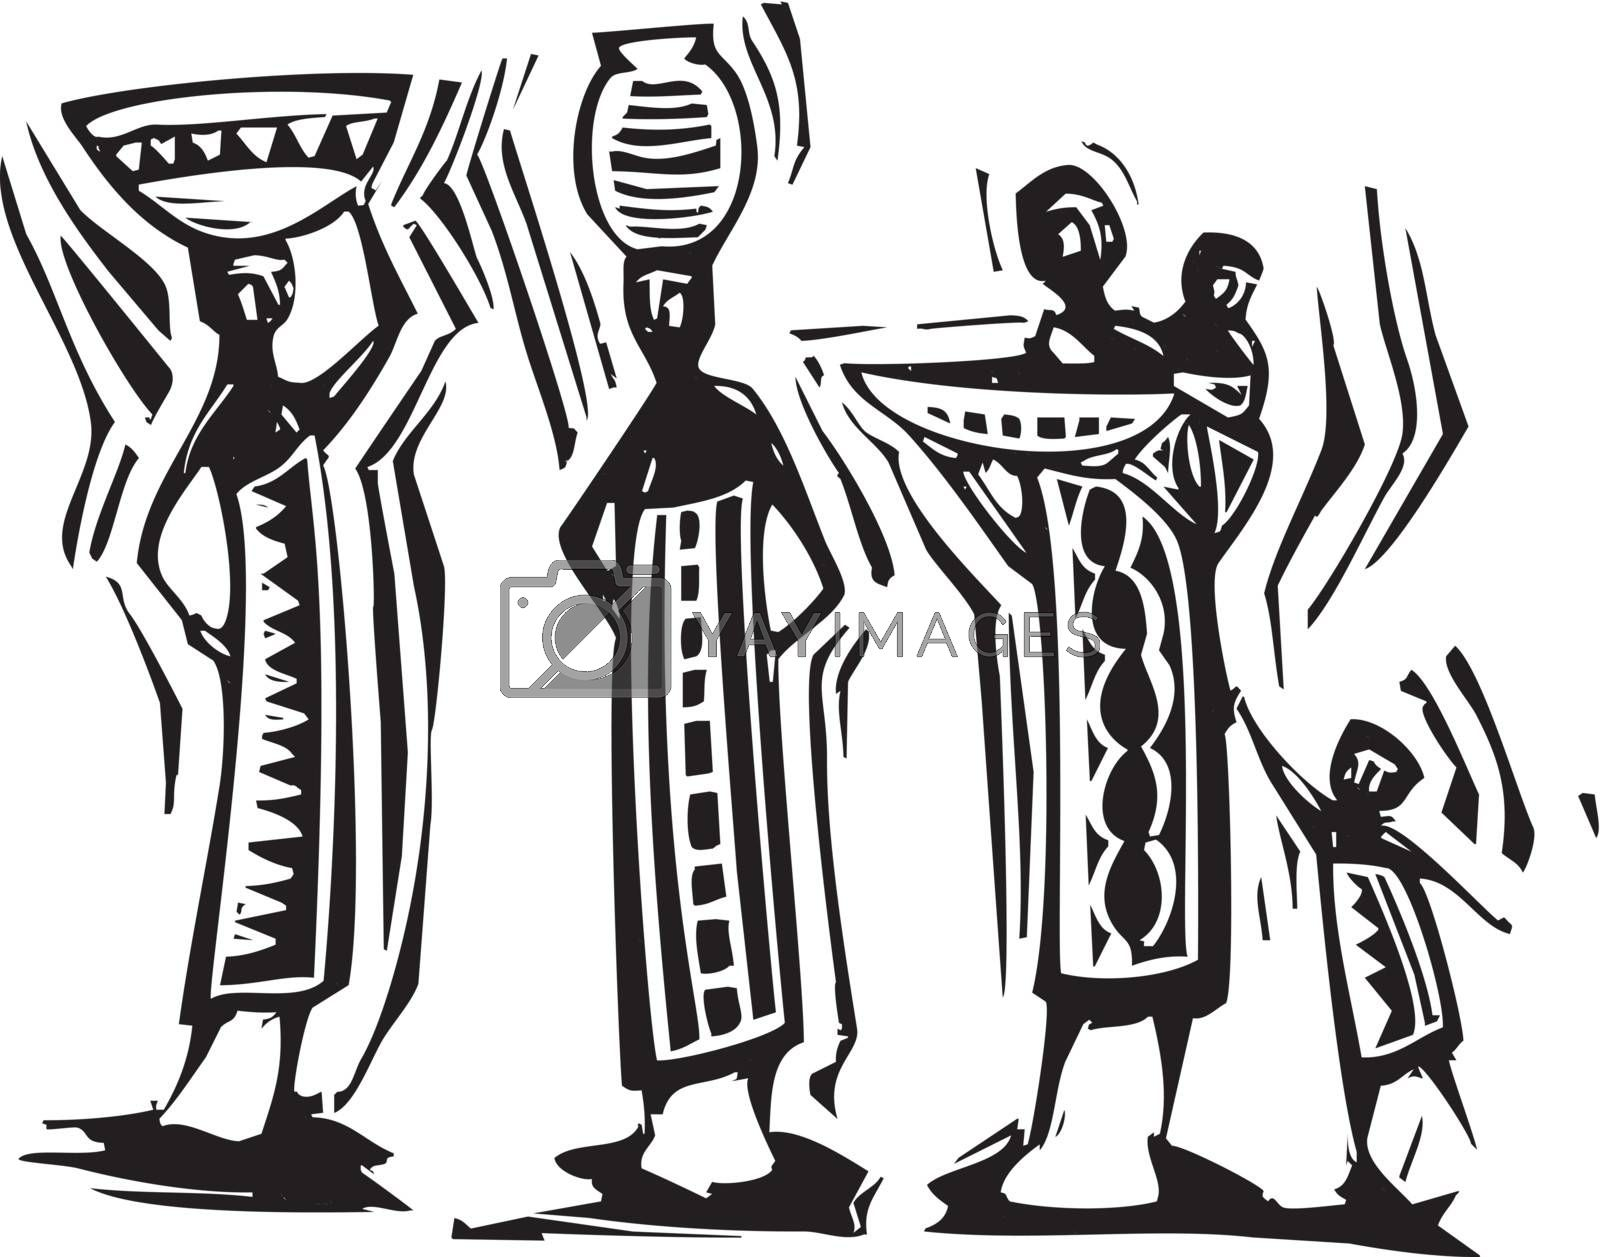 Traditional African textile design with women carrying baskets.